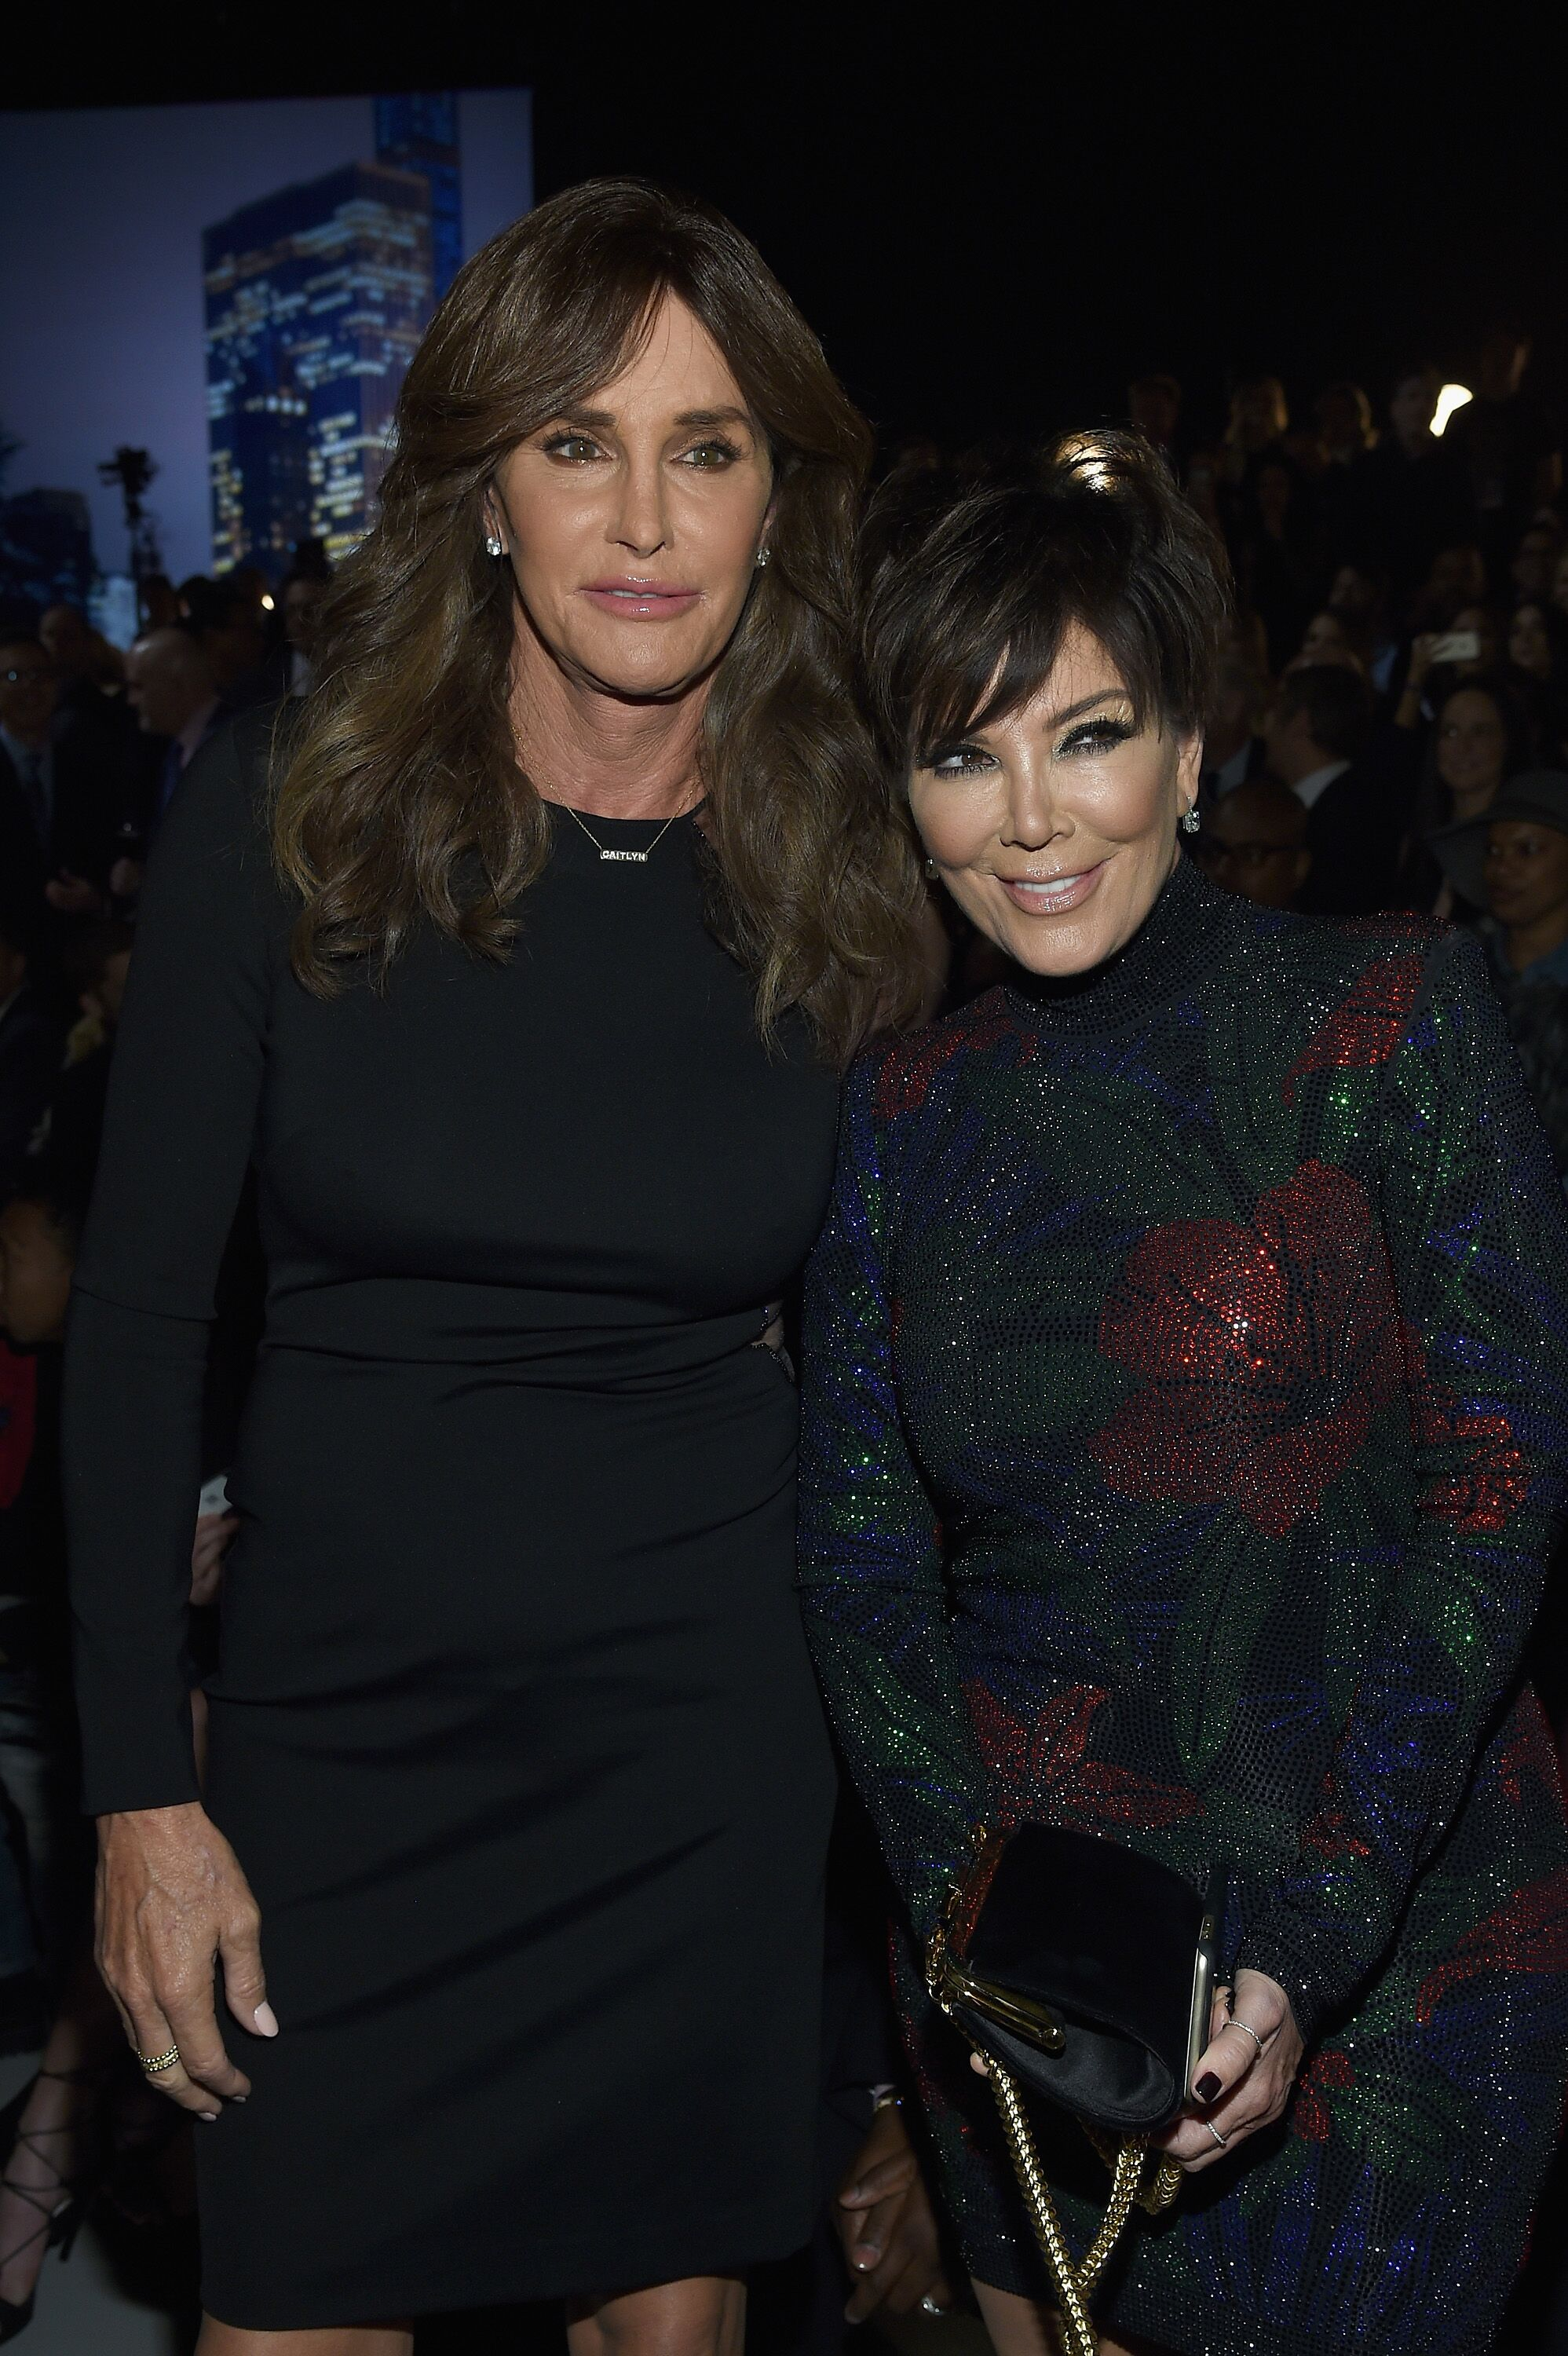 Caitlyn Jenner and Kris Jenner attend the 2015 Victoria's Secret Fashion in New York | Source: Getty Images